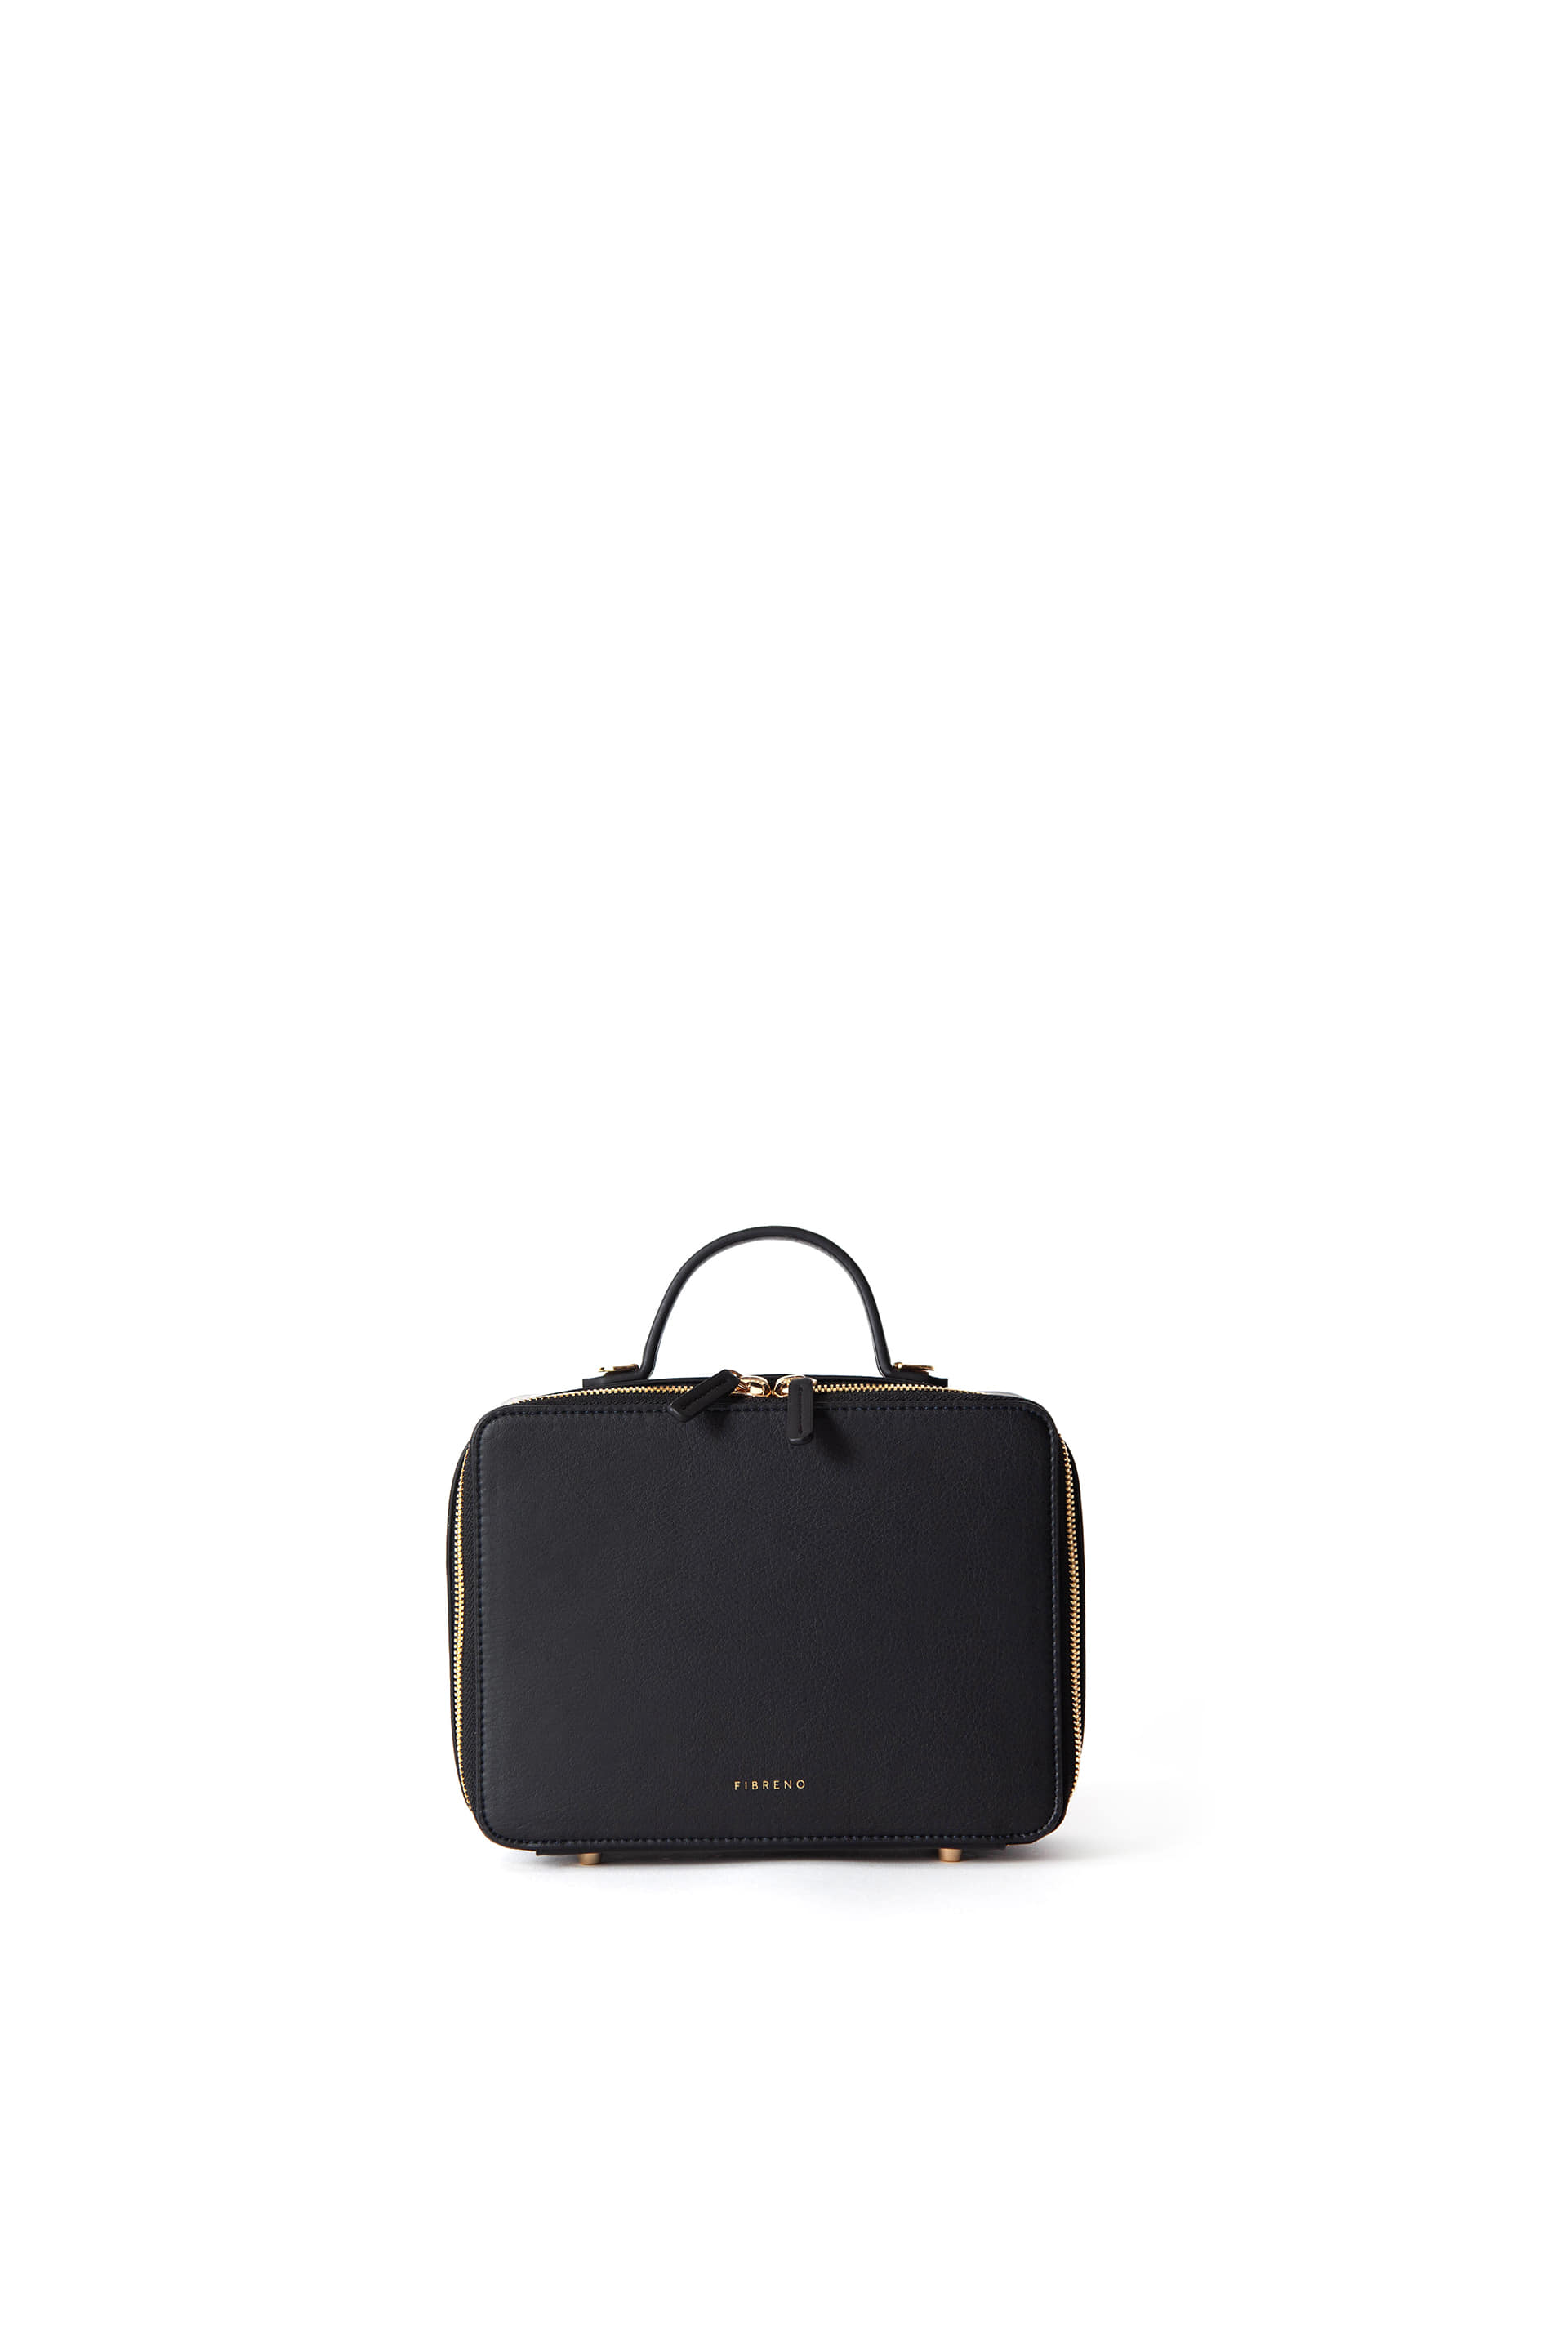 BB SQUARE BAG 22 Black